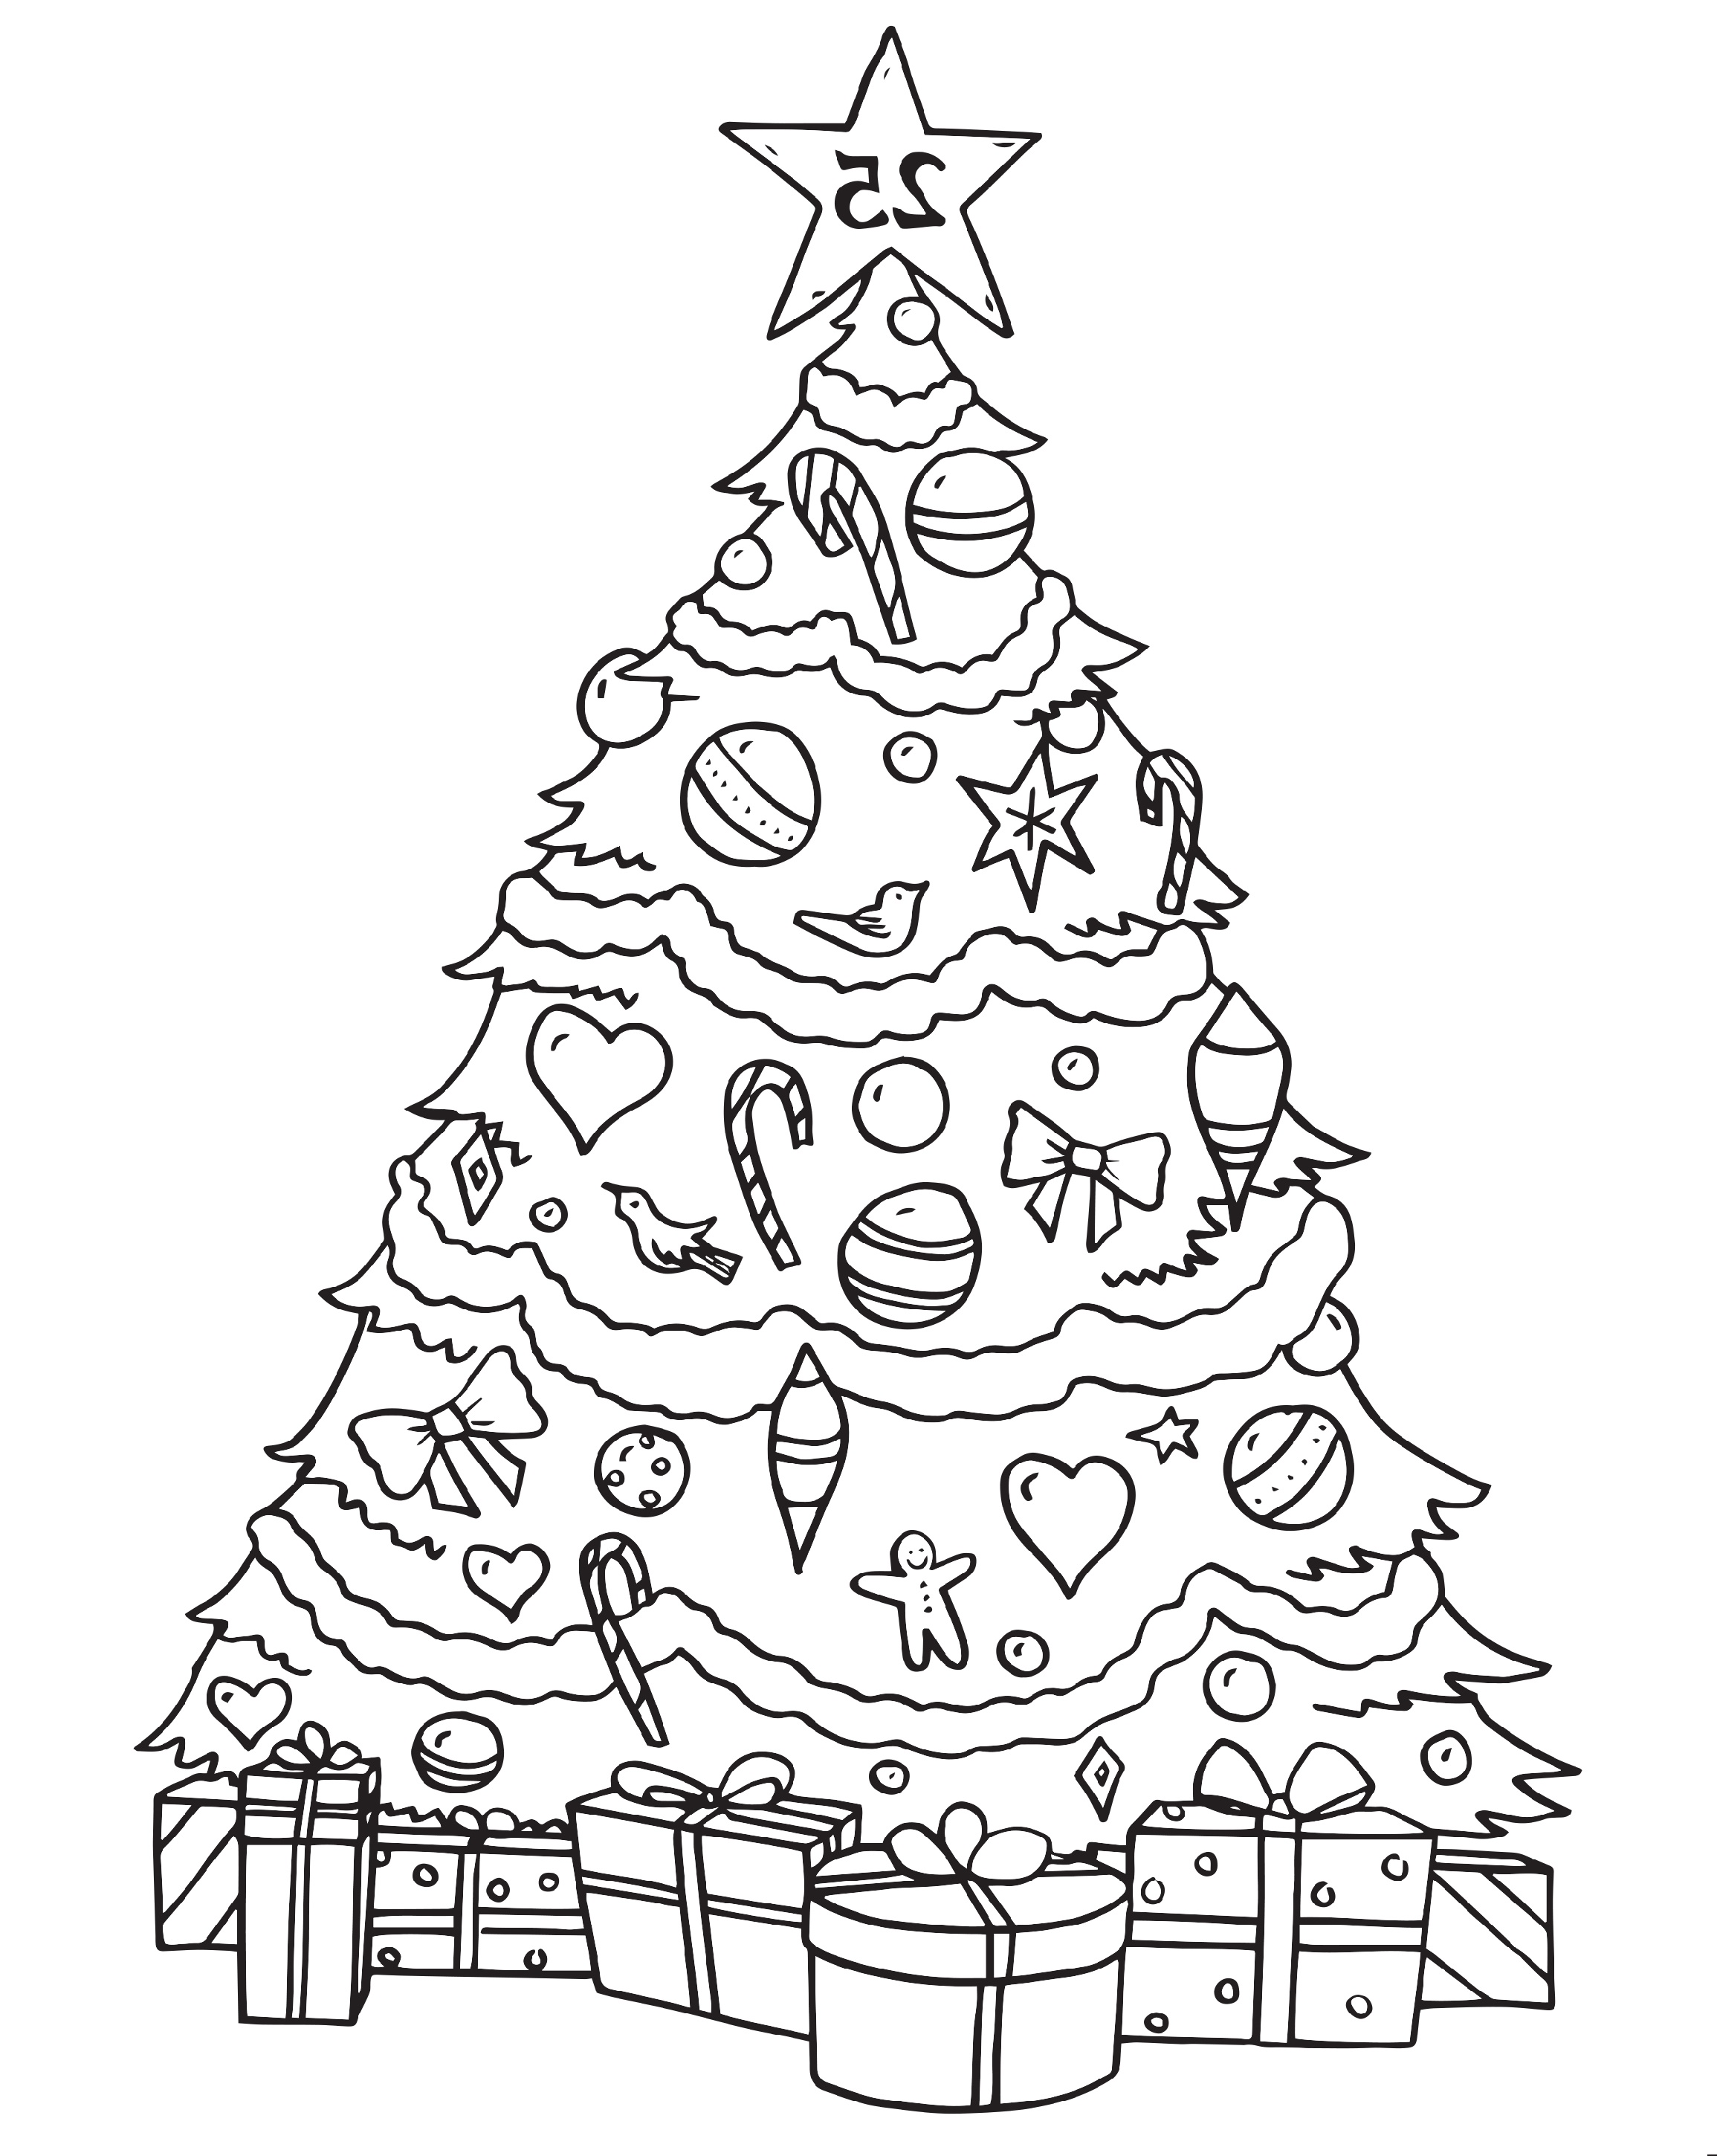 Christmas-Coloring-Pages-Christmas-Tree